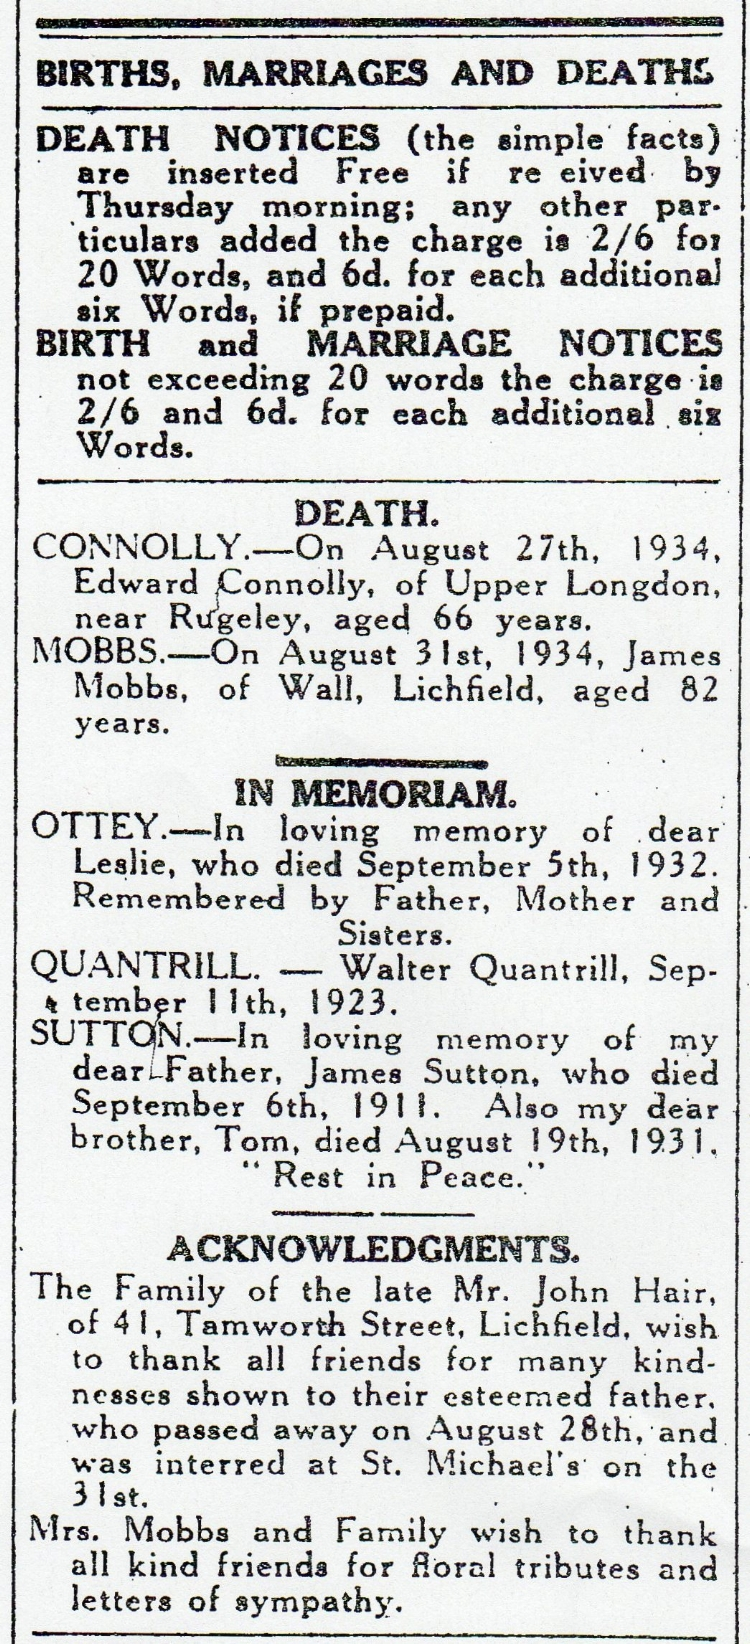 Notice of the death of James Mobbs and the family's acknowledgment from the Lichfield Mercury edition of 7 September 1934